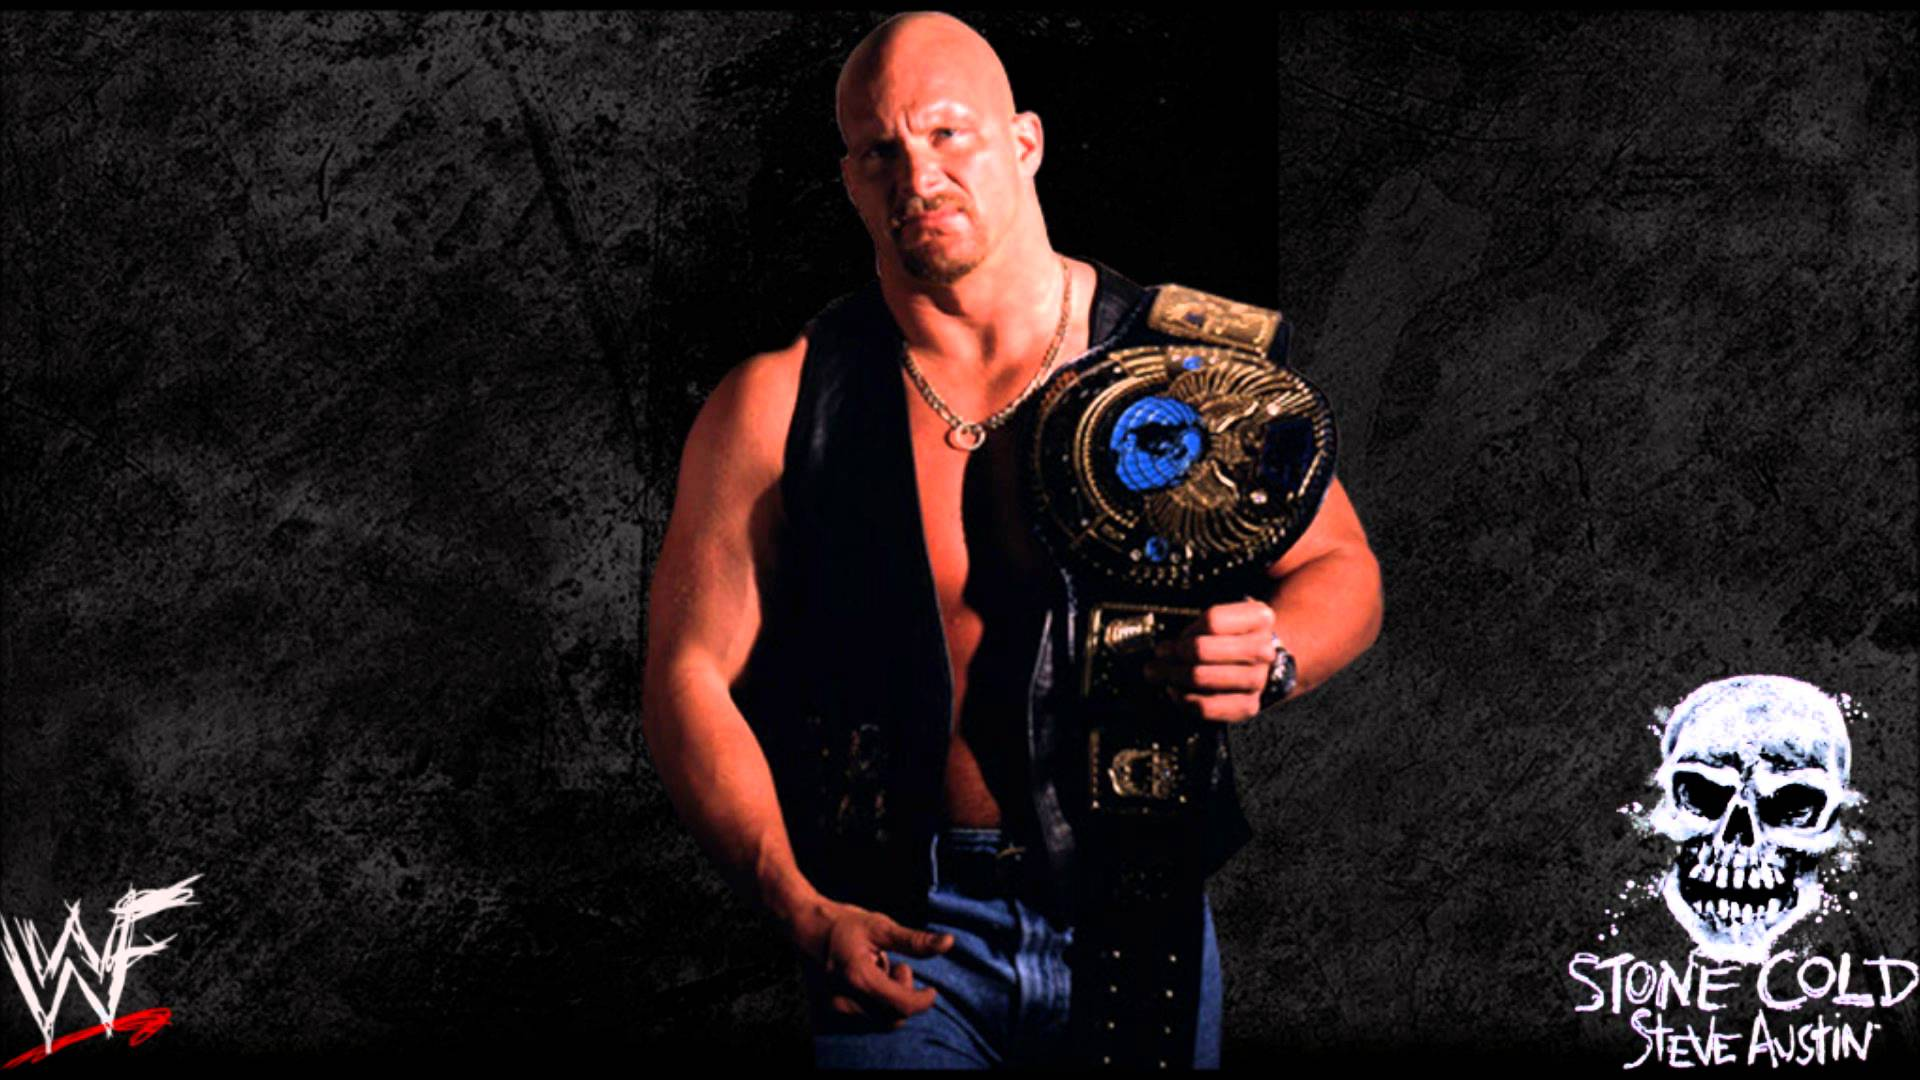 Free Download Stone Cold Steve Austin Wallpaper Hd Wallpapers